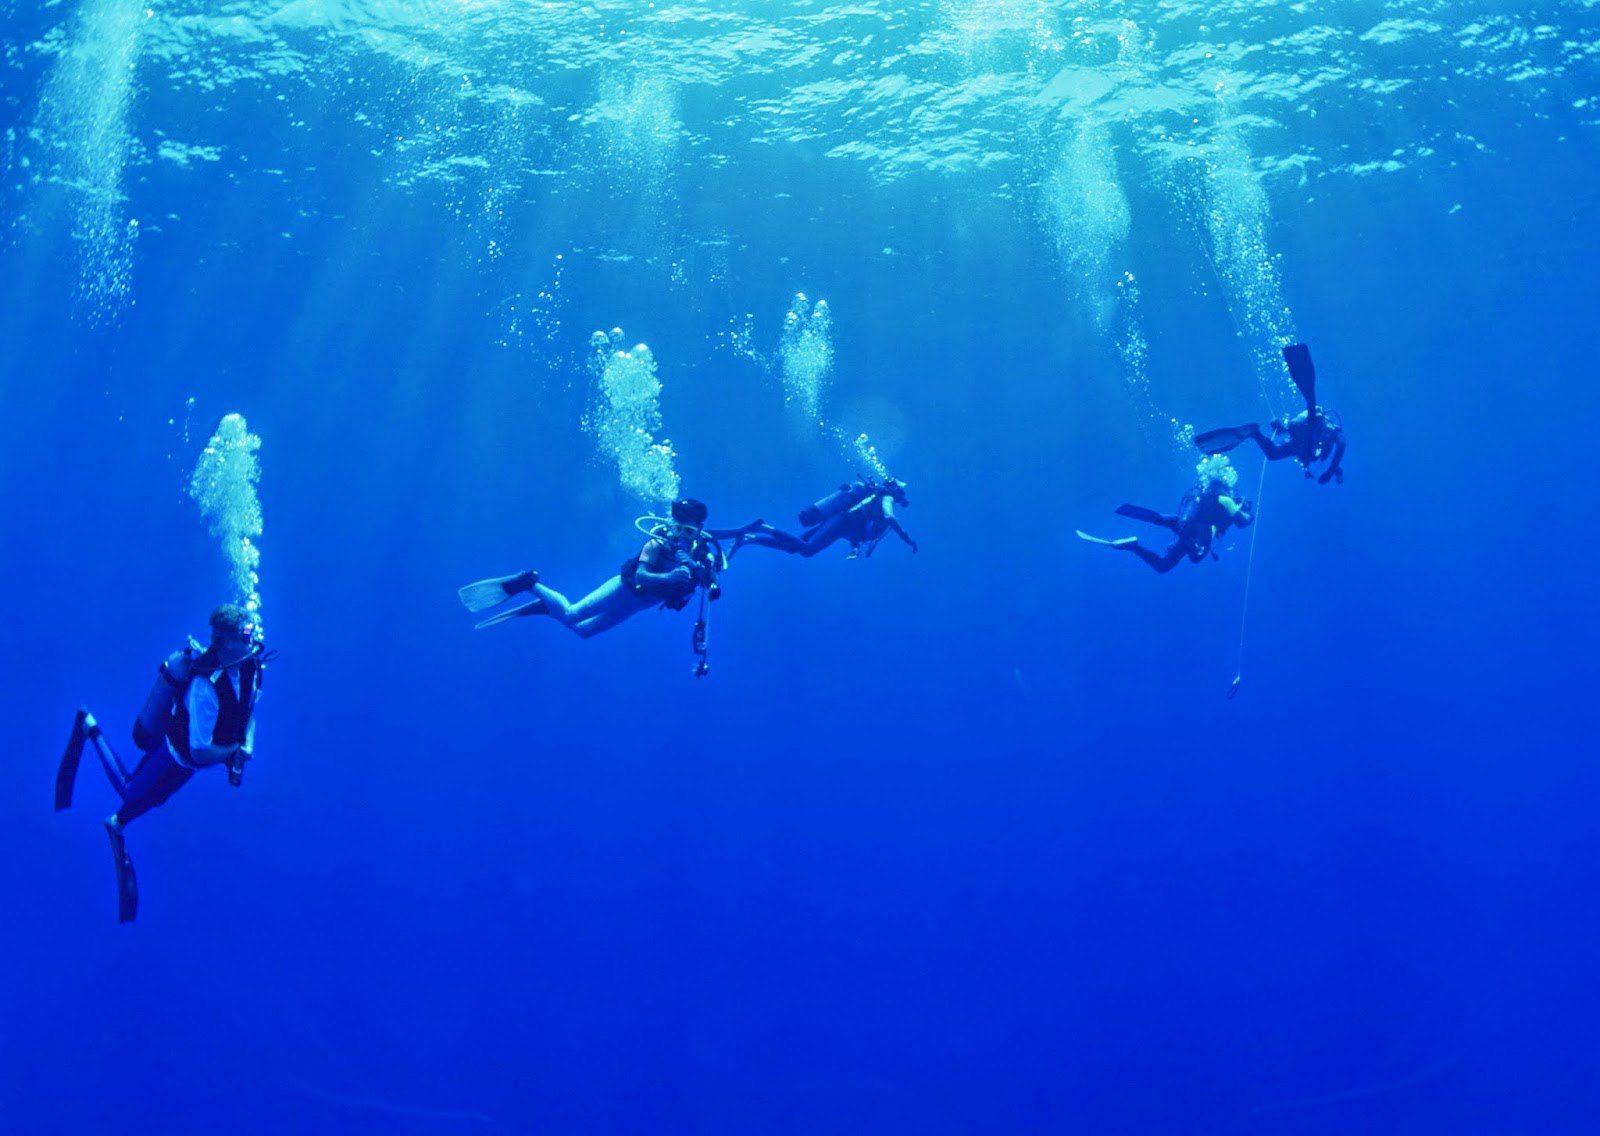 Scuba Diving Wallpapers - HD - Android Apps on Google Play